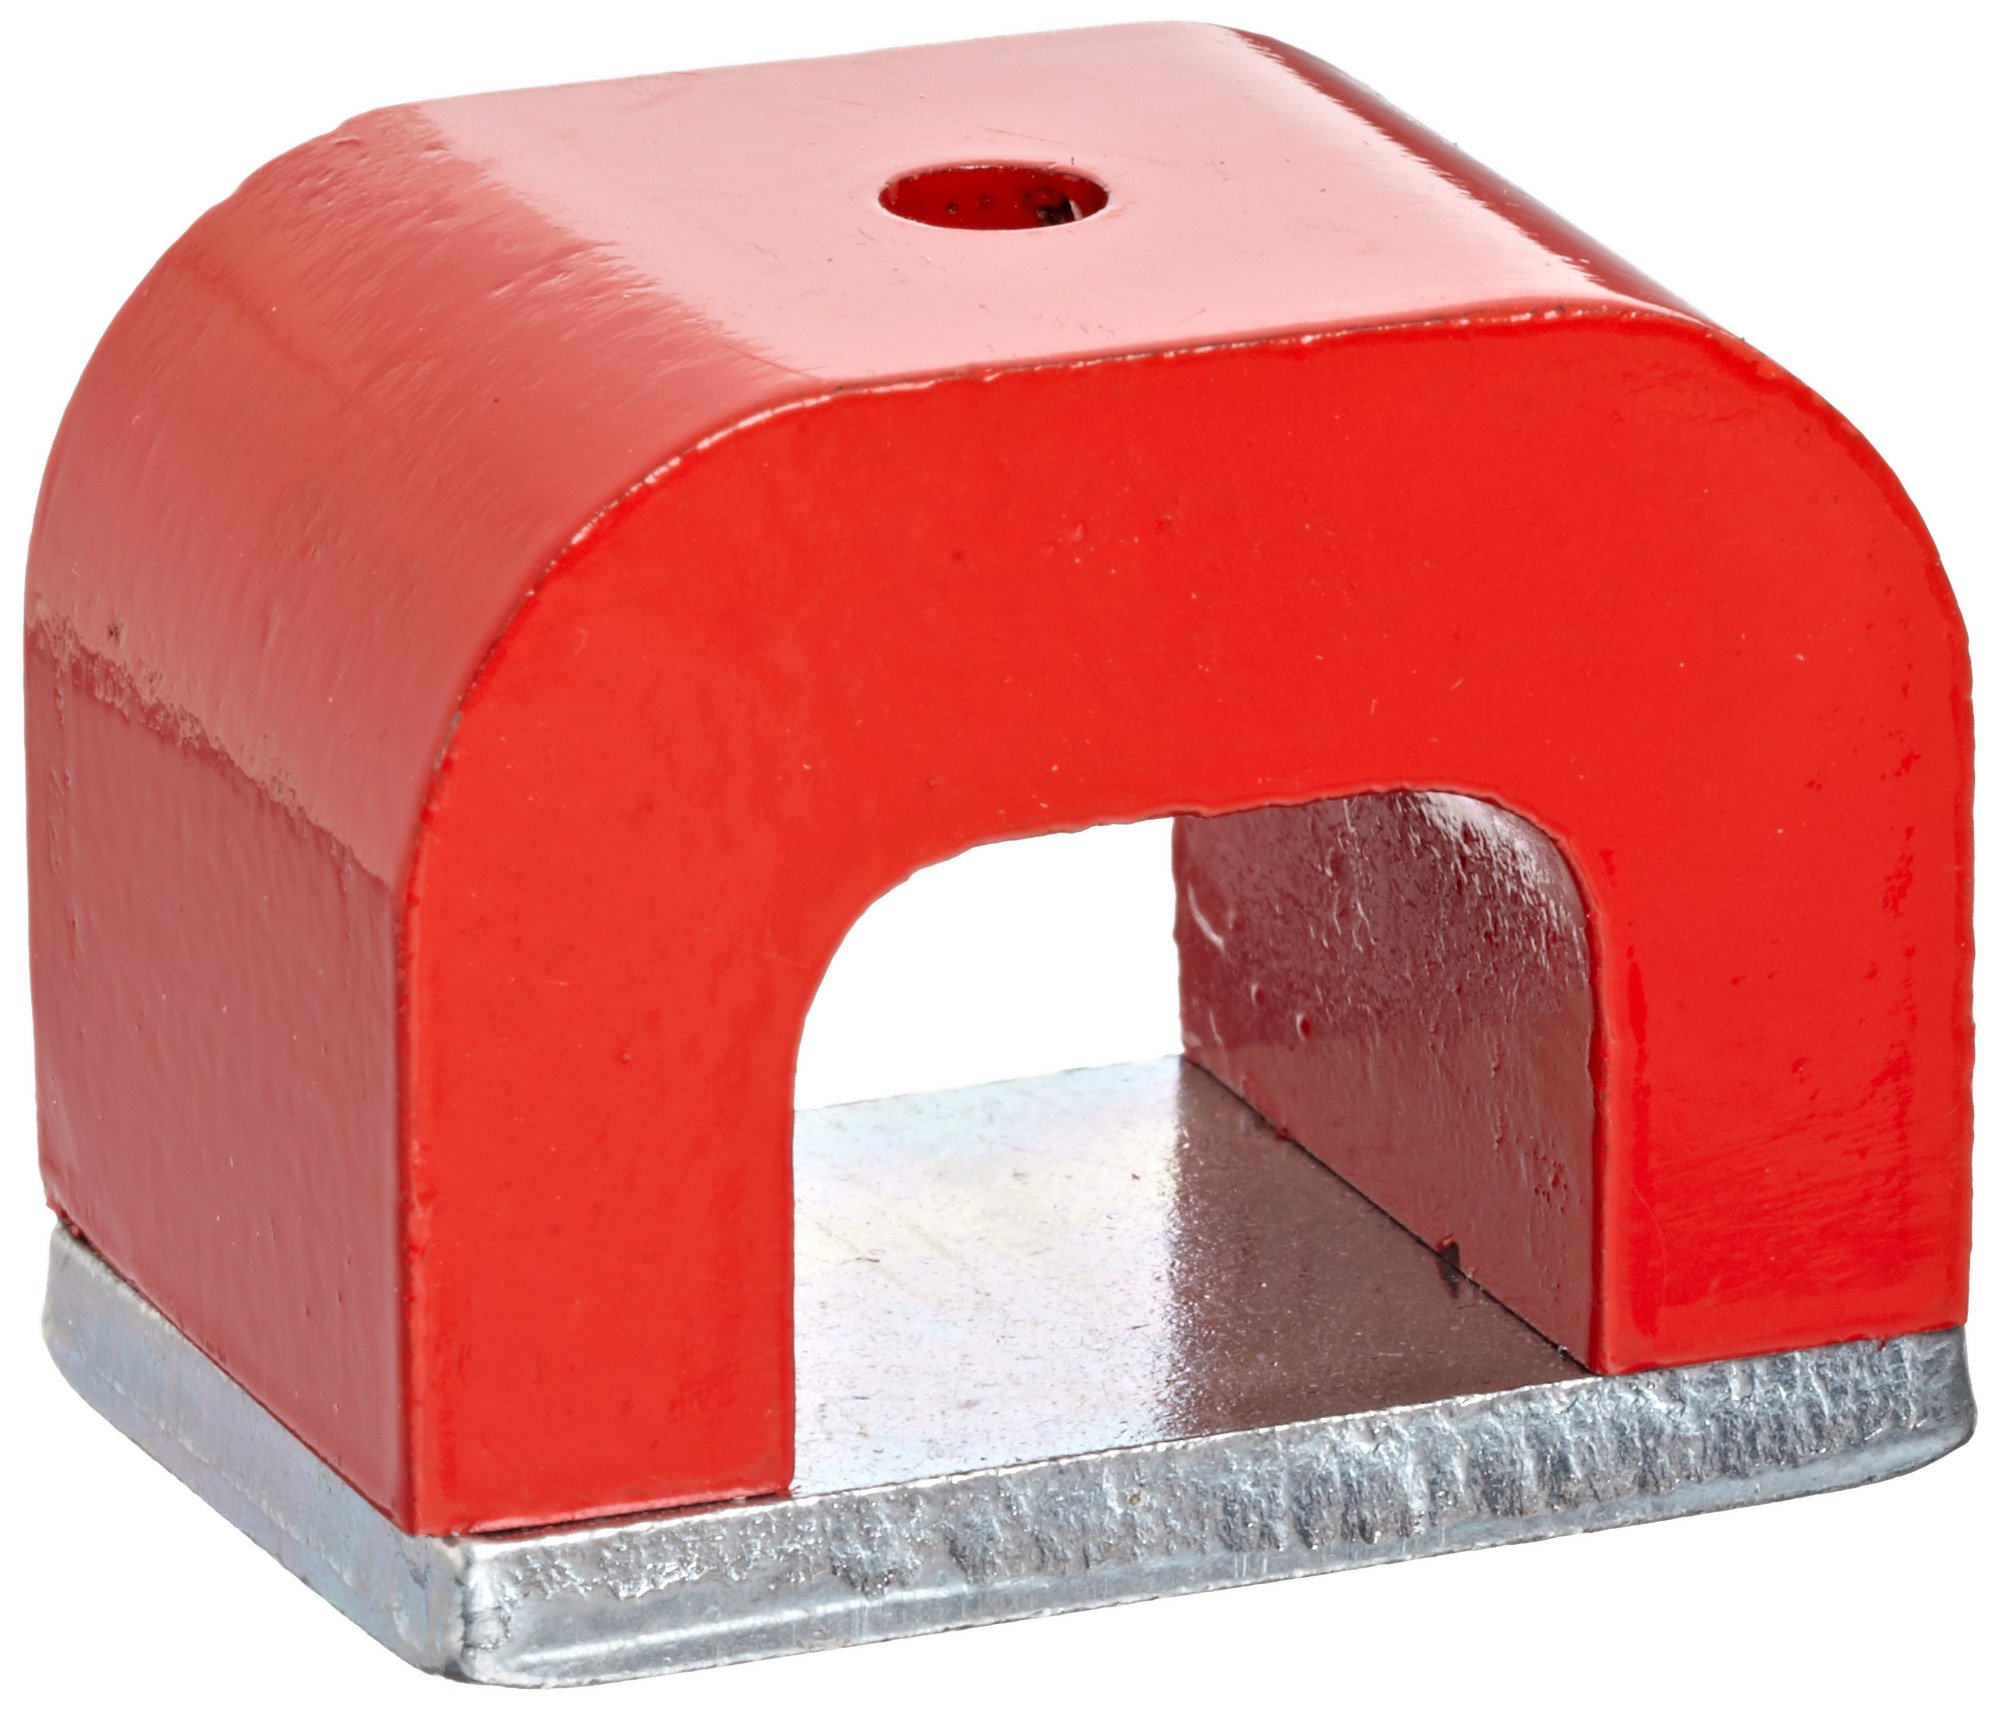 Red Cast Alnico 5 Bridge Magnet With Keeper, 1.77'' Wide, 1.18'' high, 1.18'' Thick With 0.20'' hole on top (Pack of 1)